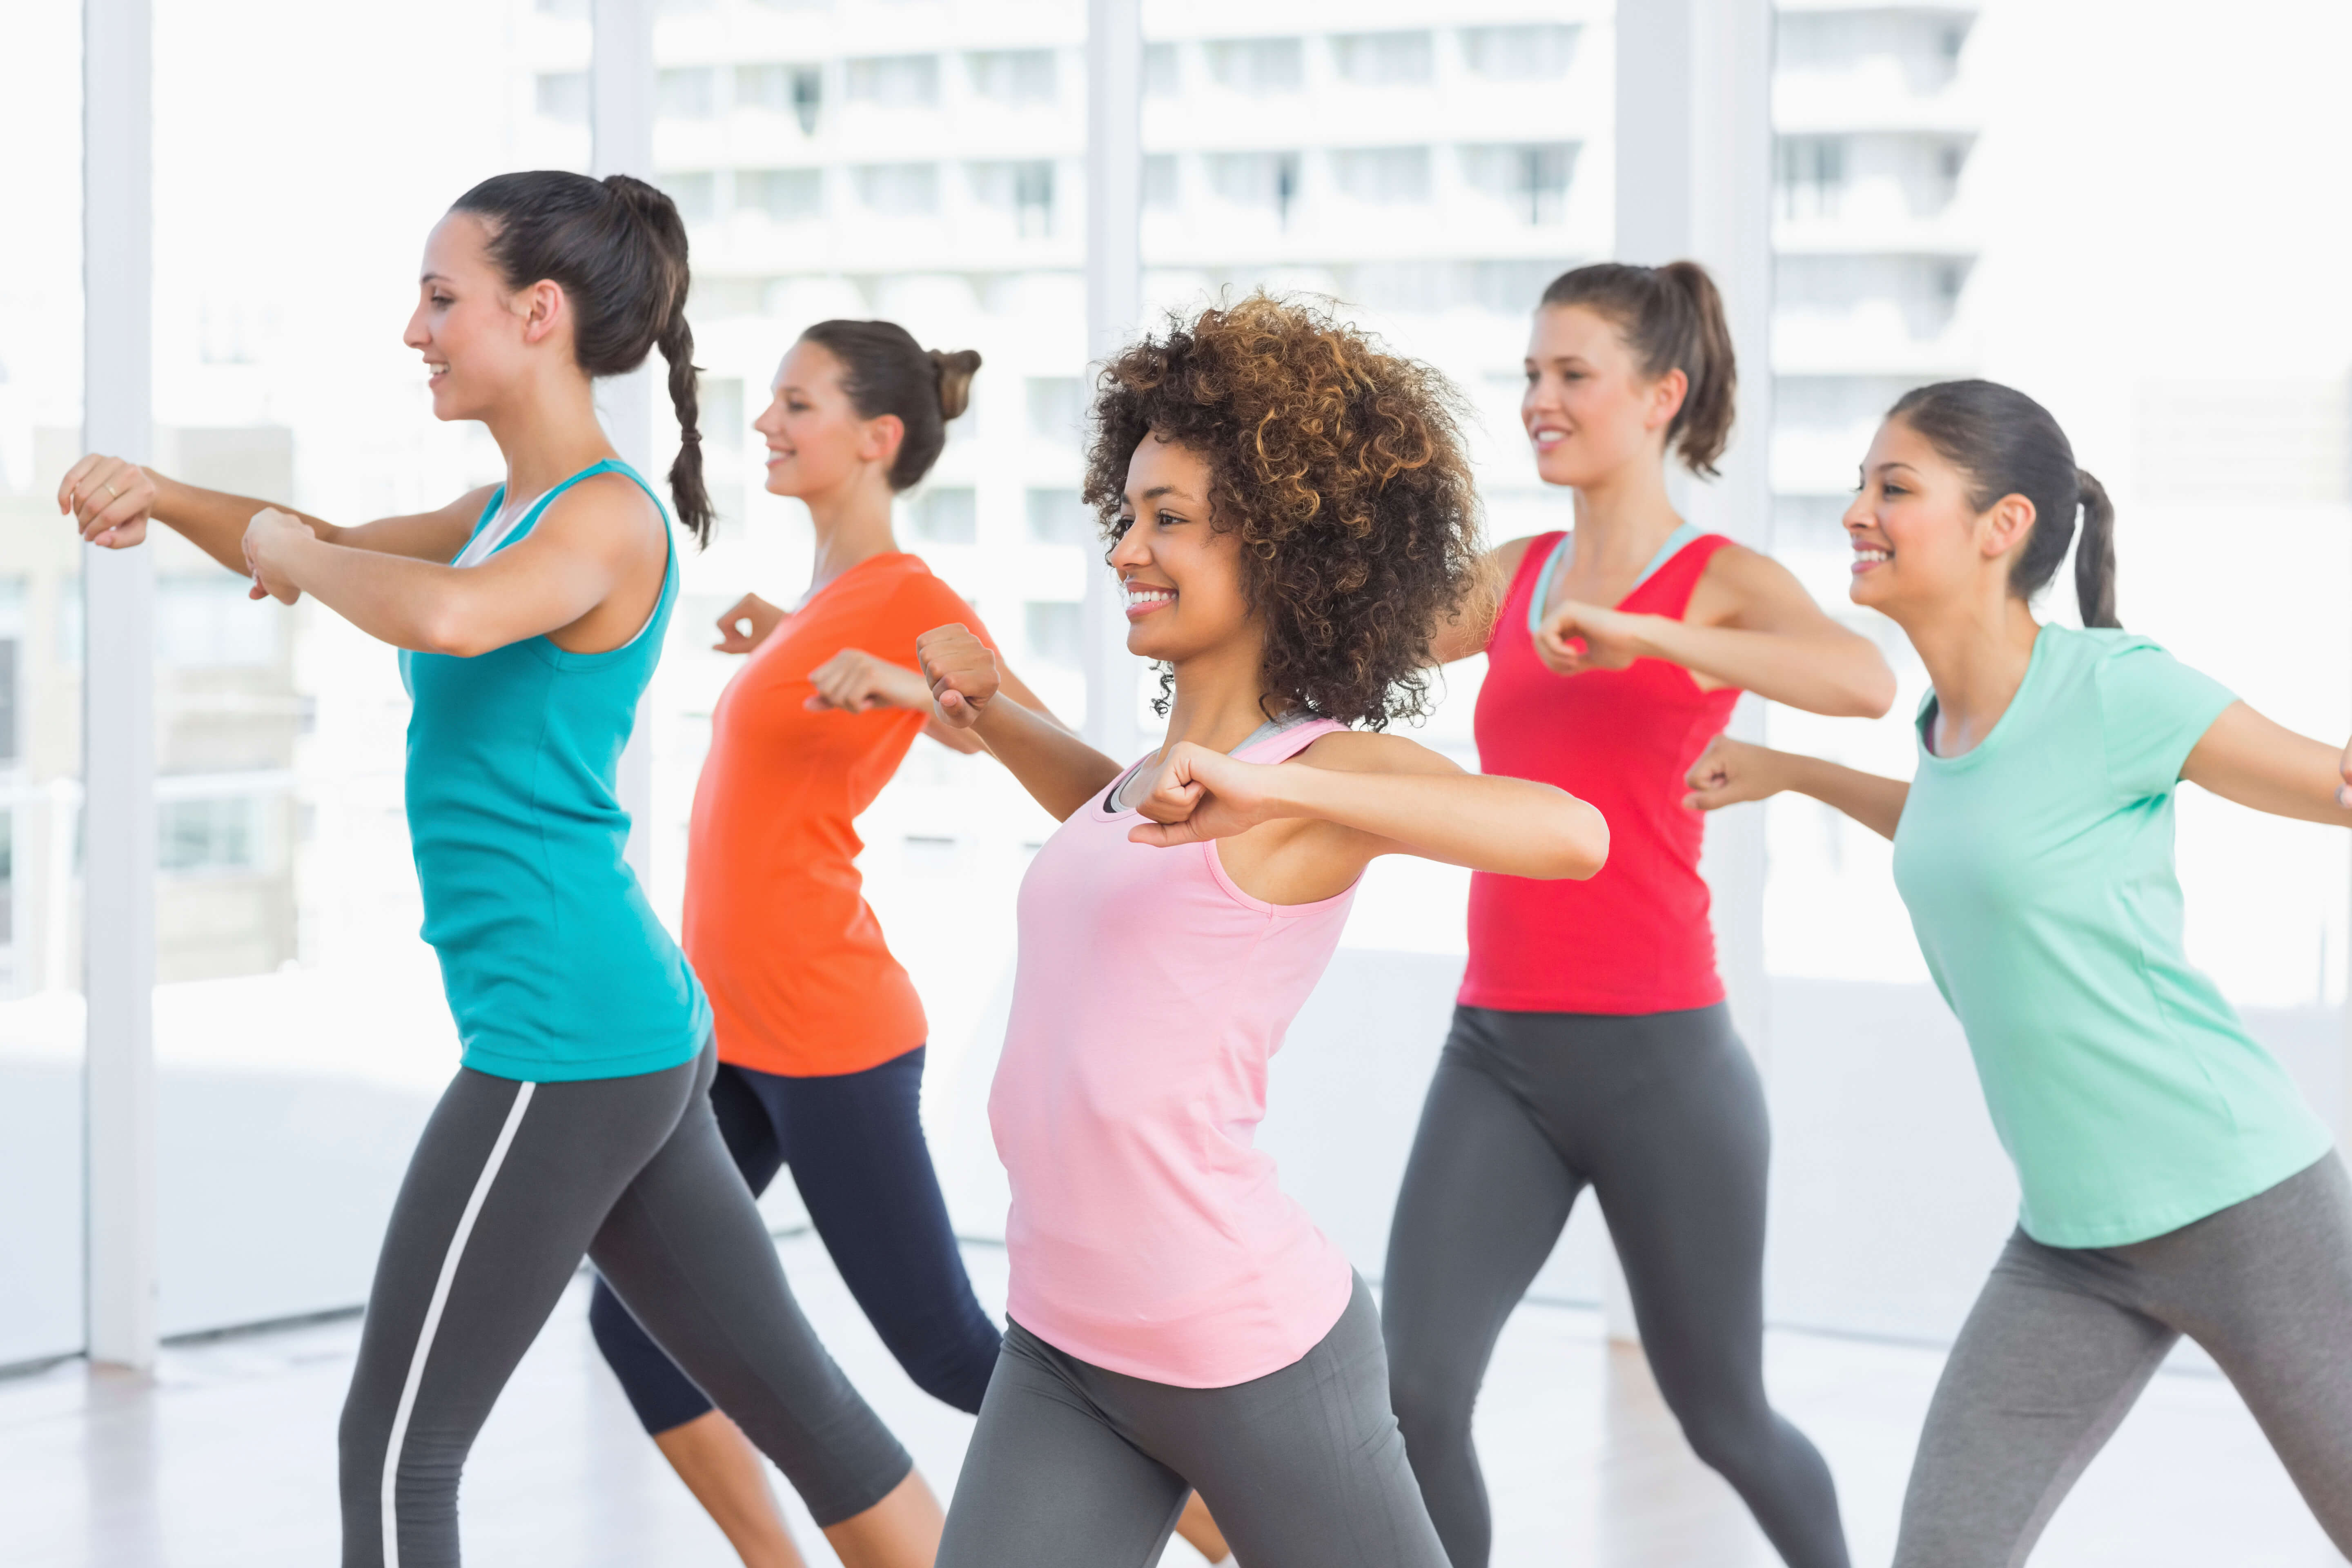 Multicultural group of women doing a dance based exercise class